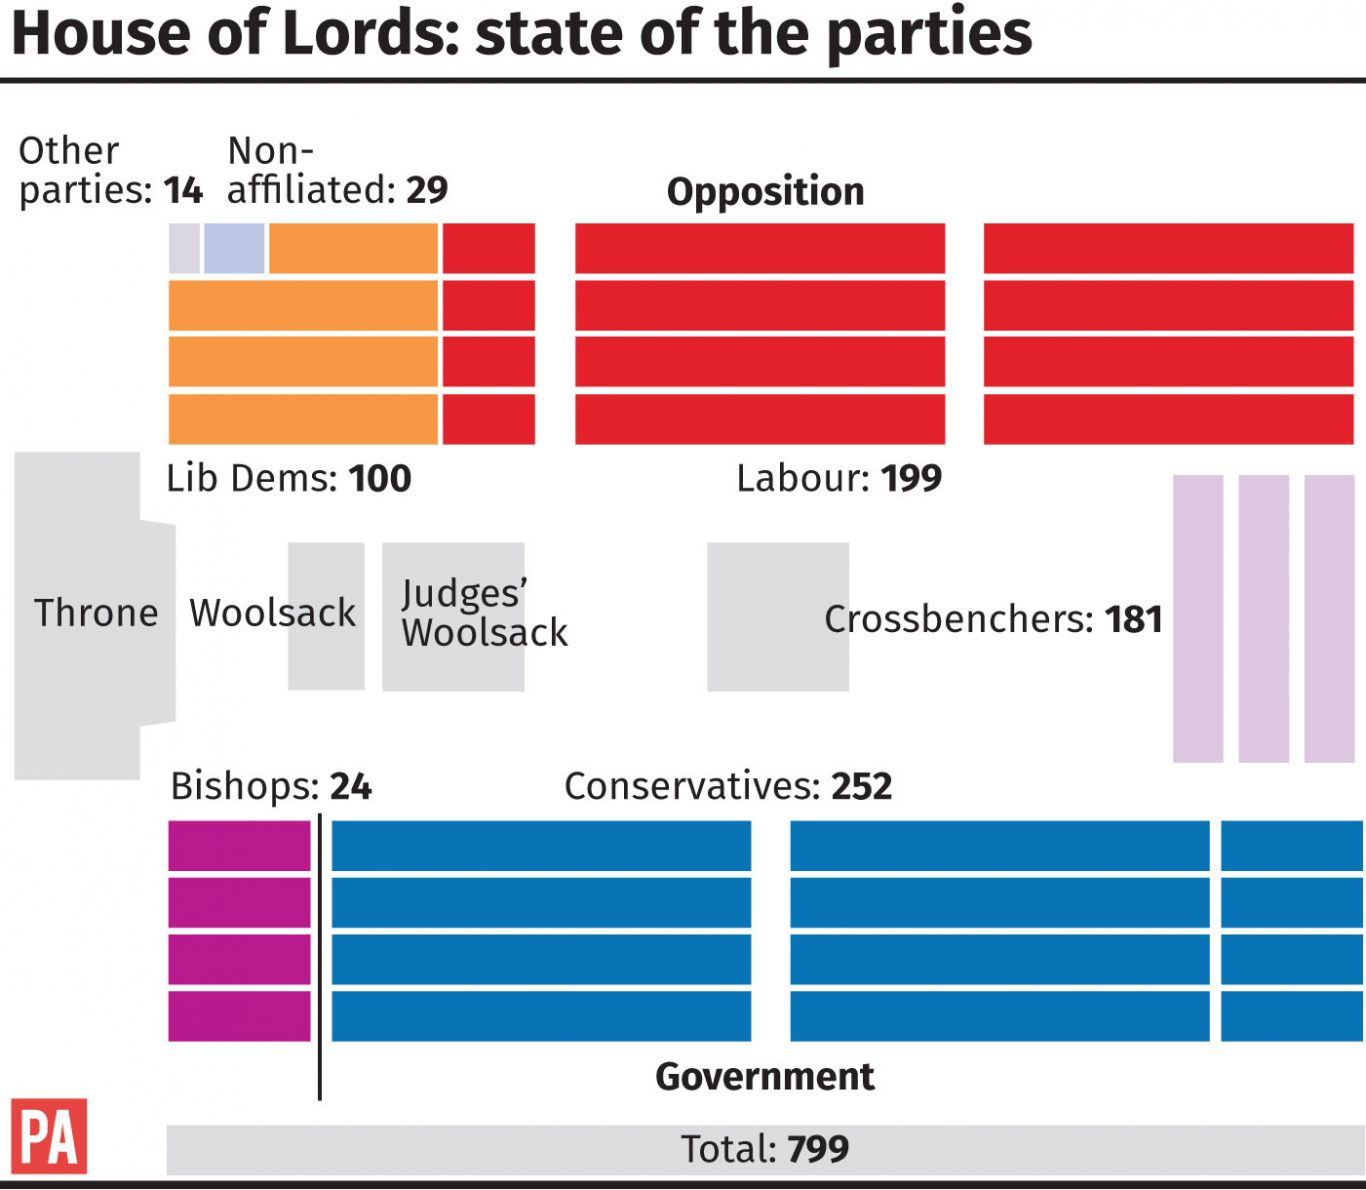 House of Lords, state of the parties